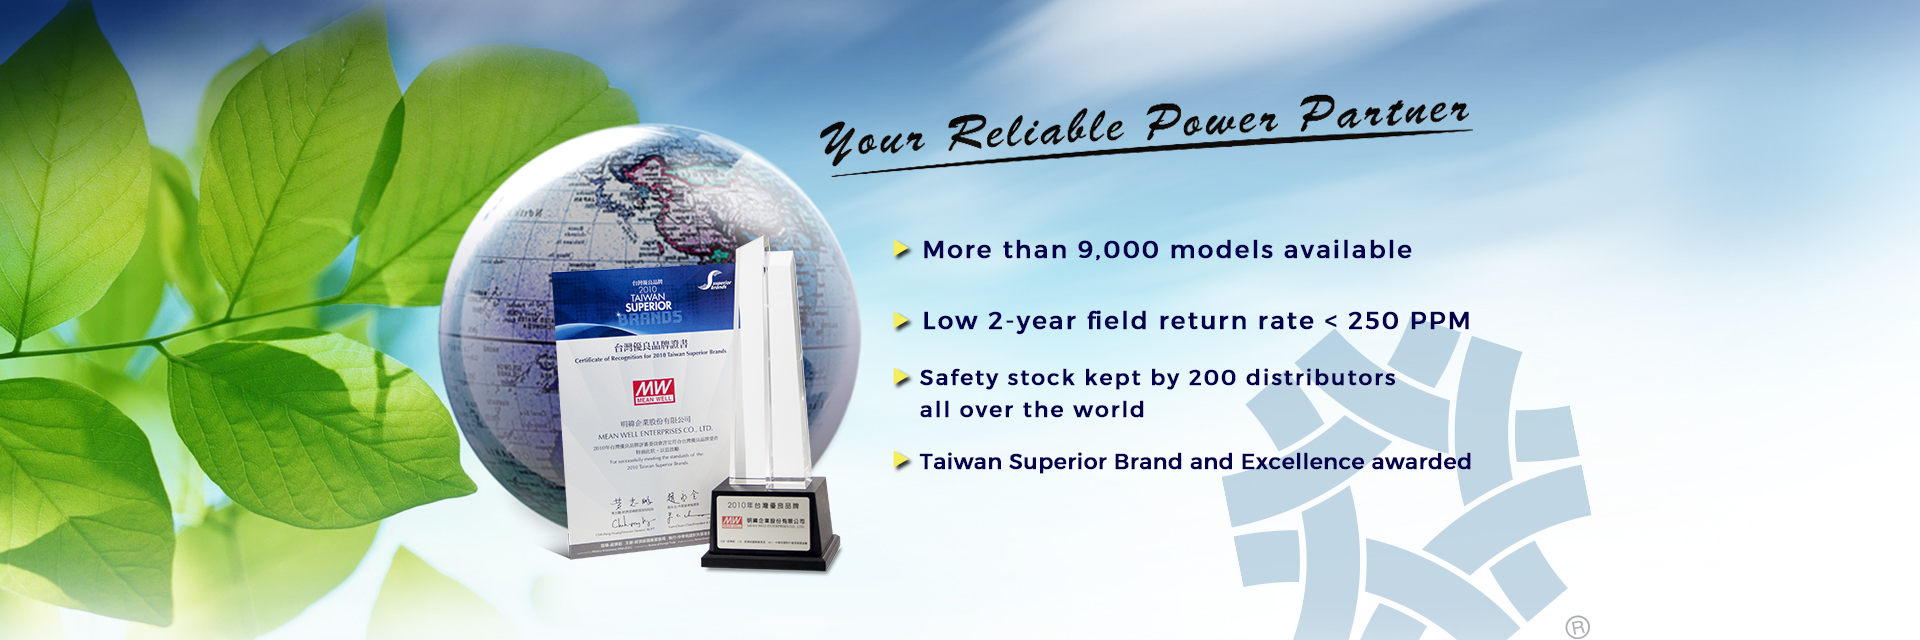 Your Reliable Power Partner